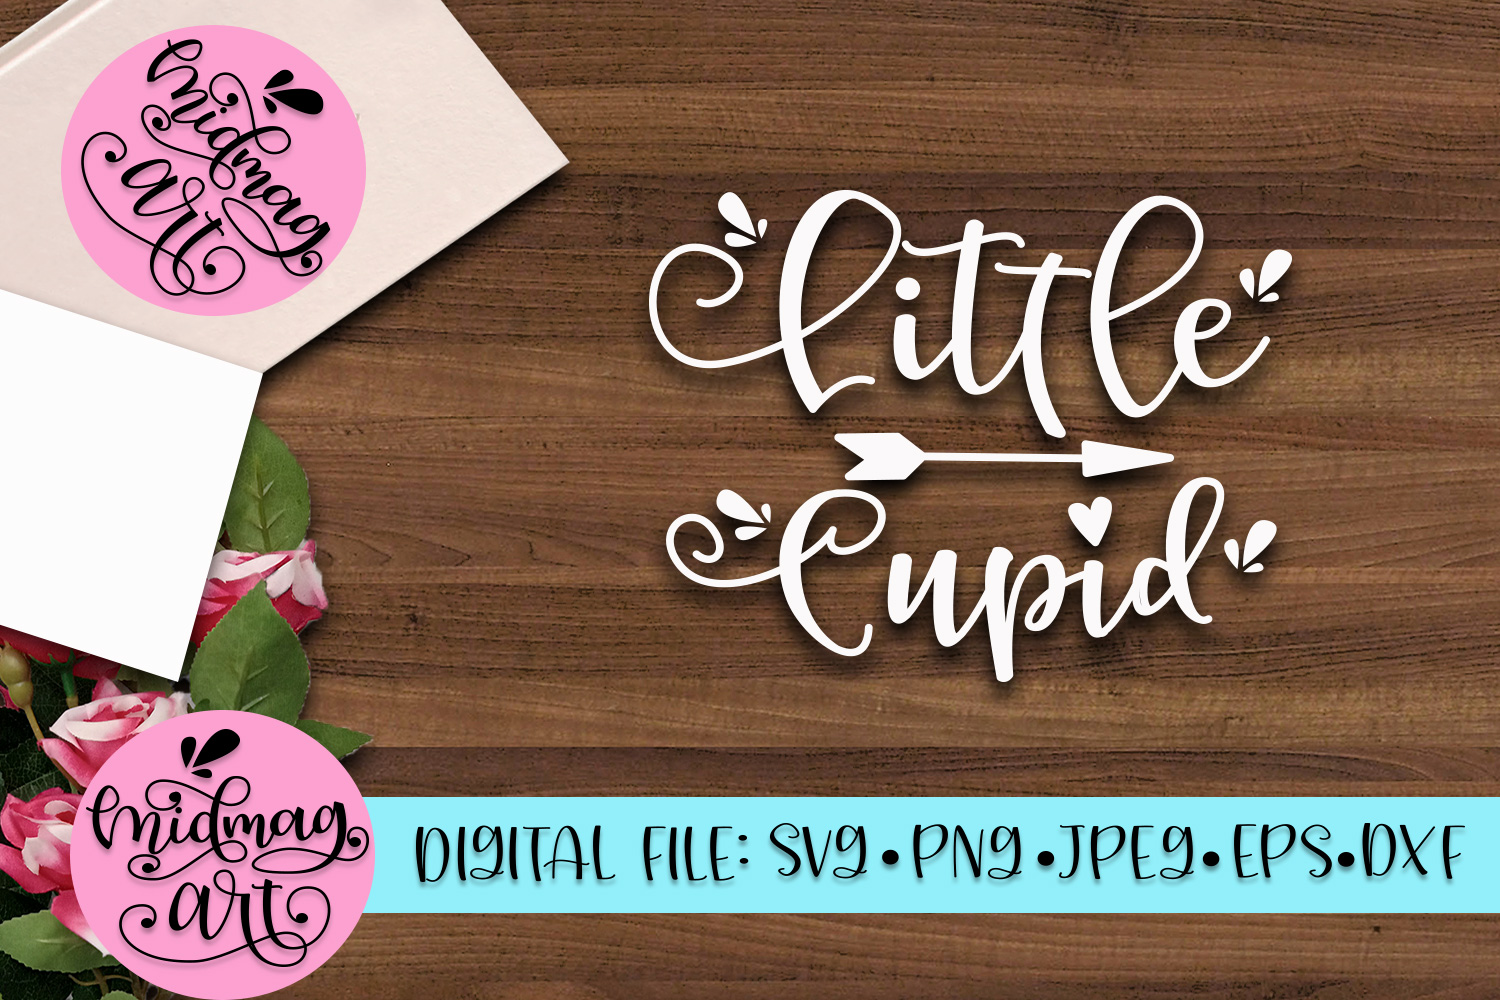 Little Cupid svg, png, jpeg, eps and dxf example image 2